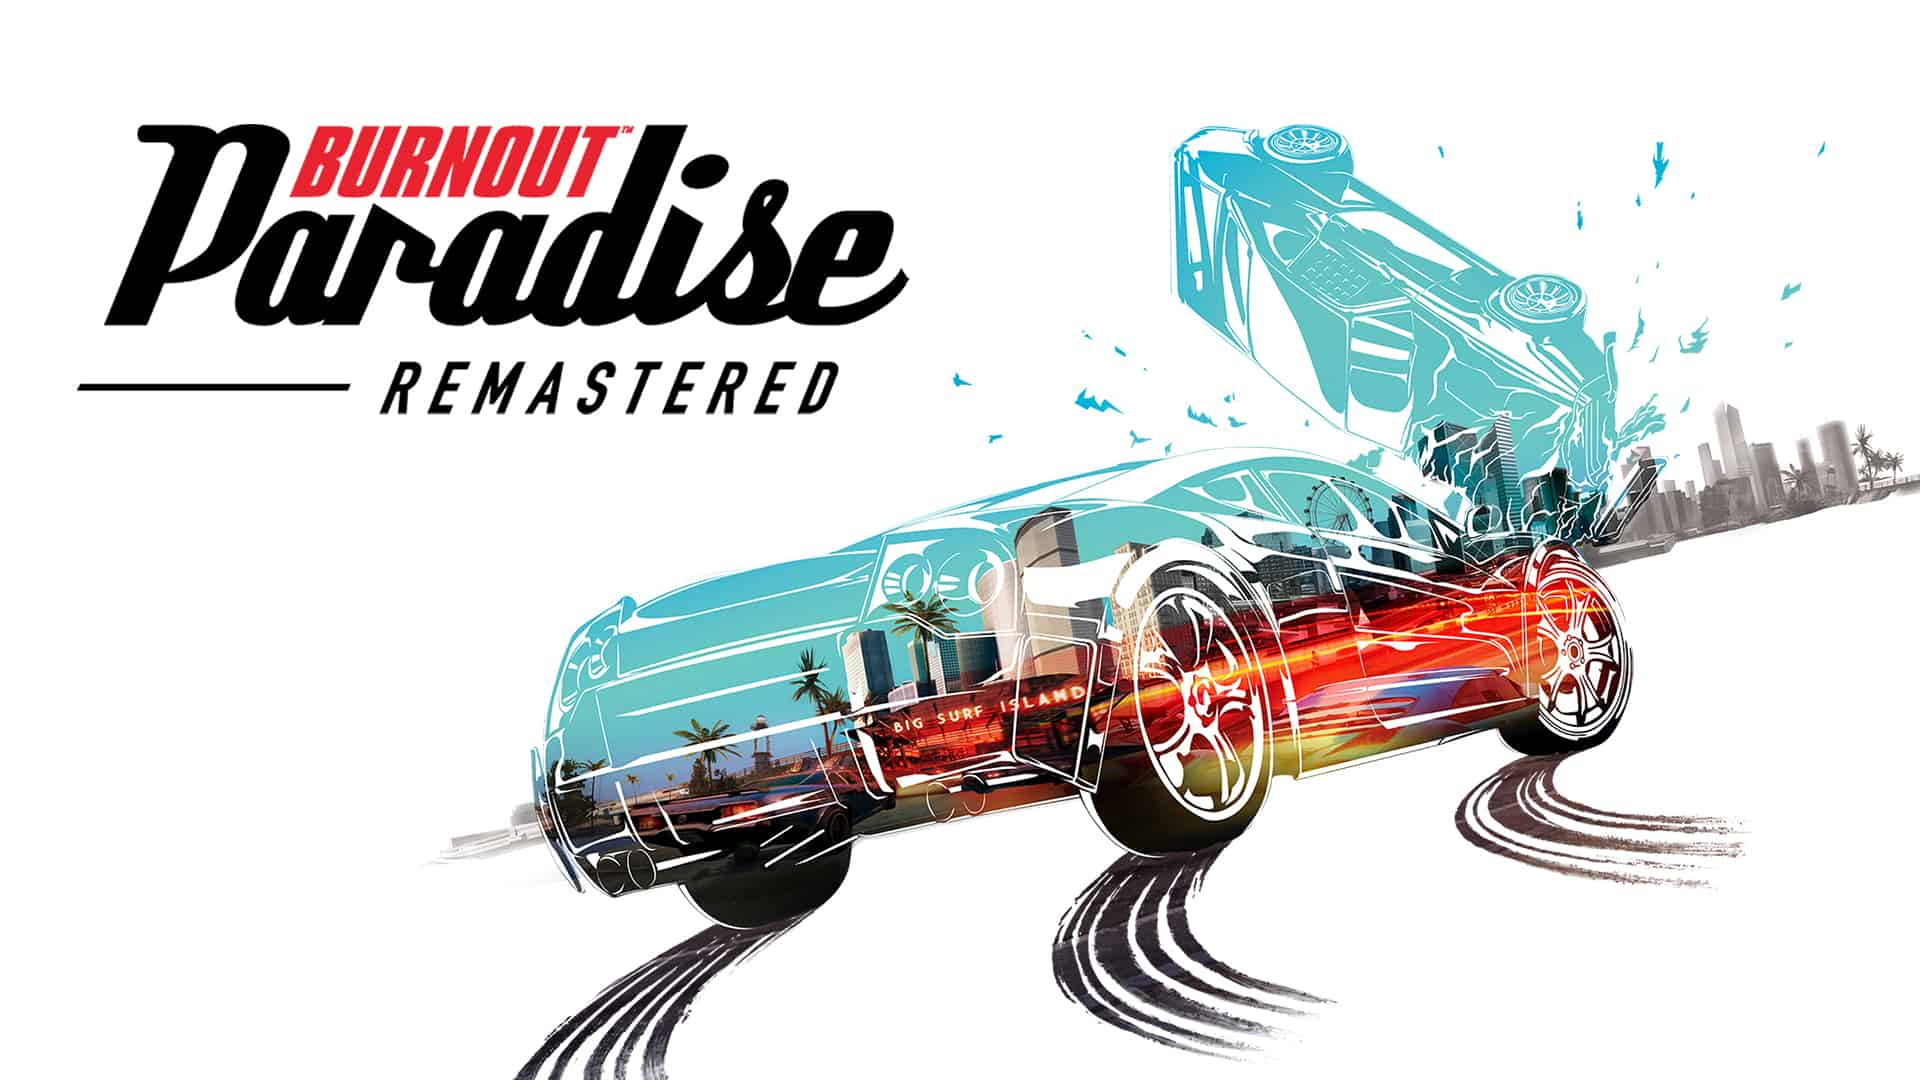 Do you have a Switch at home? Burnout Paradise Remastered is coming!